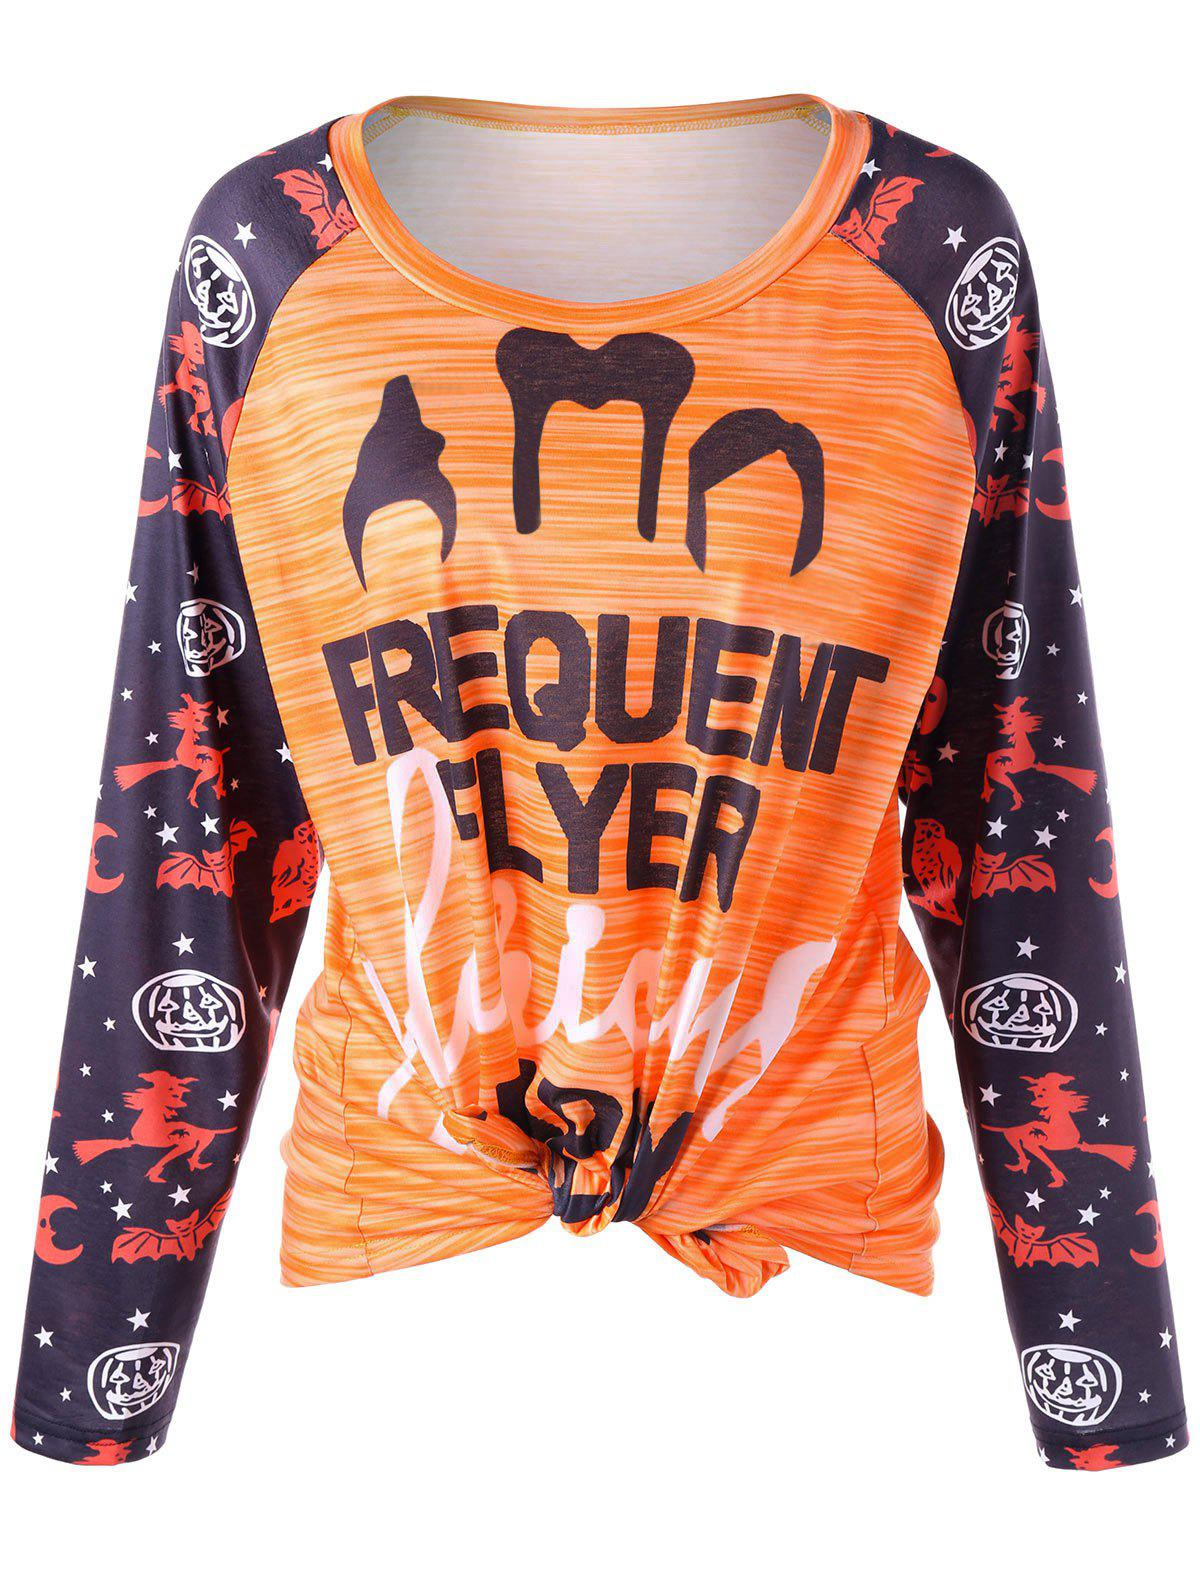 2018 halloween plus size graphic raglan sleeve t shirt for T shirt graphics for sale